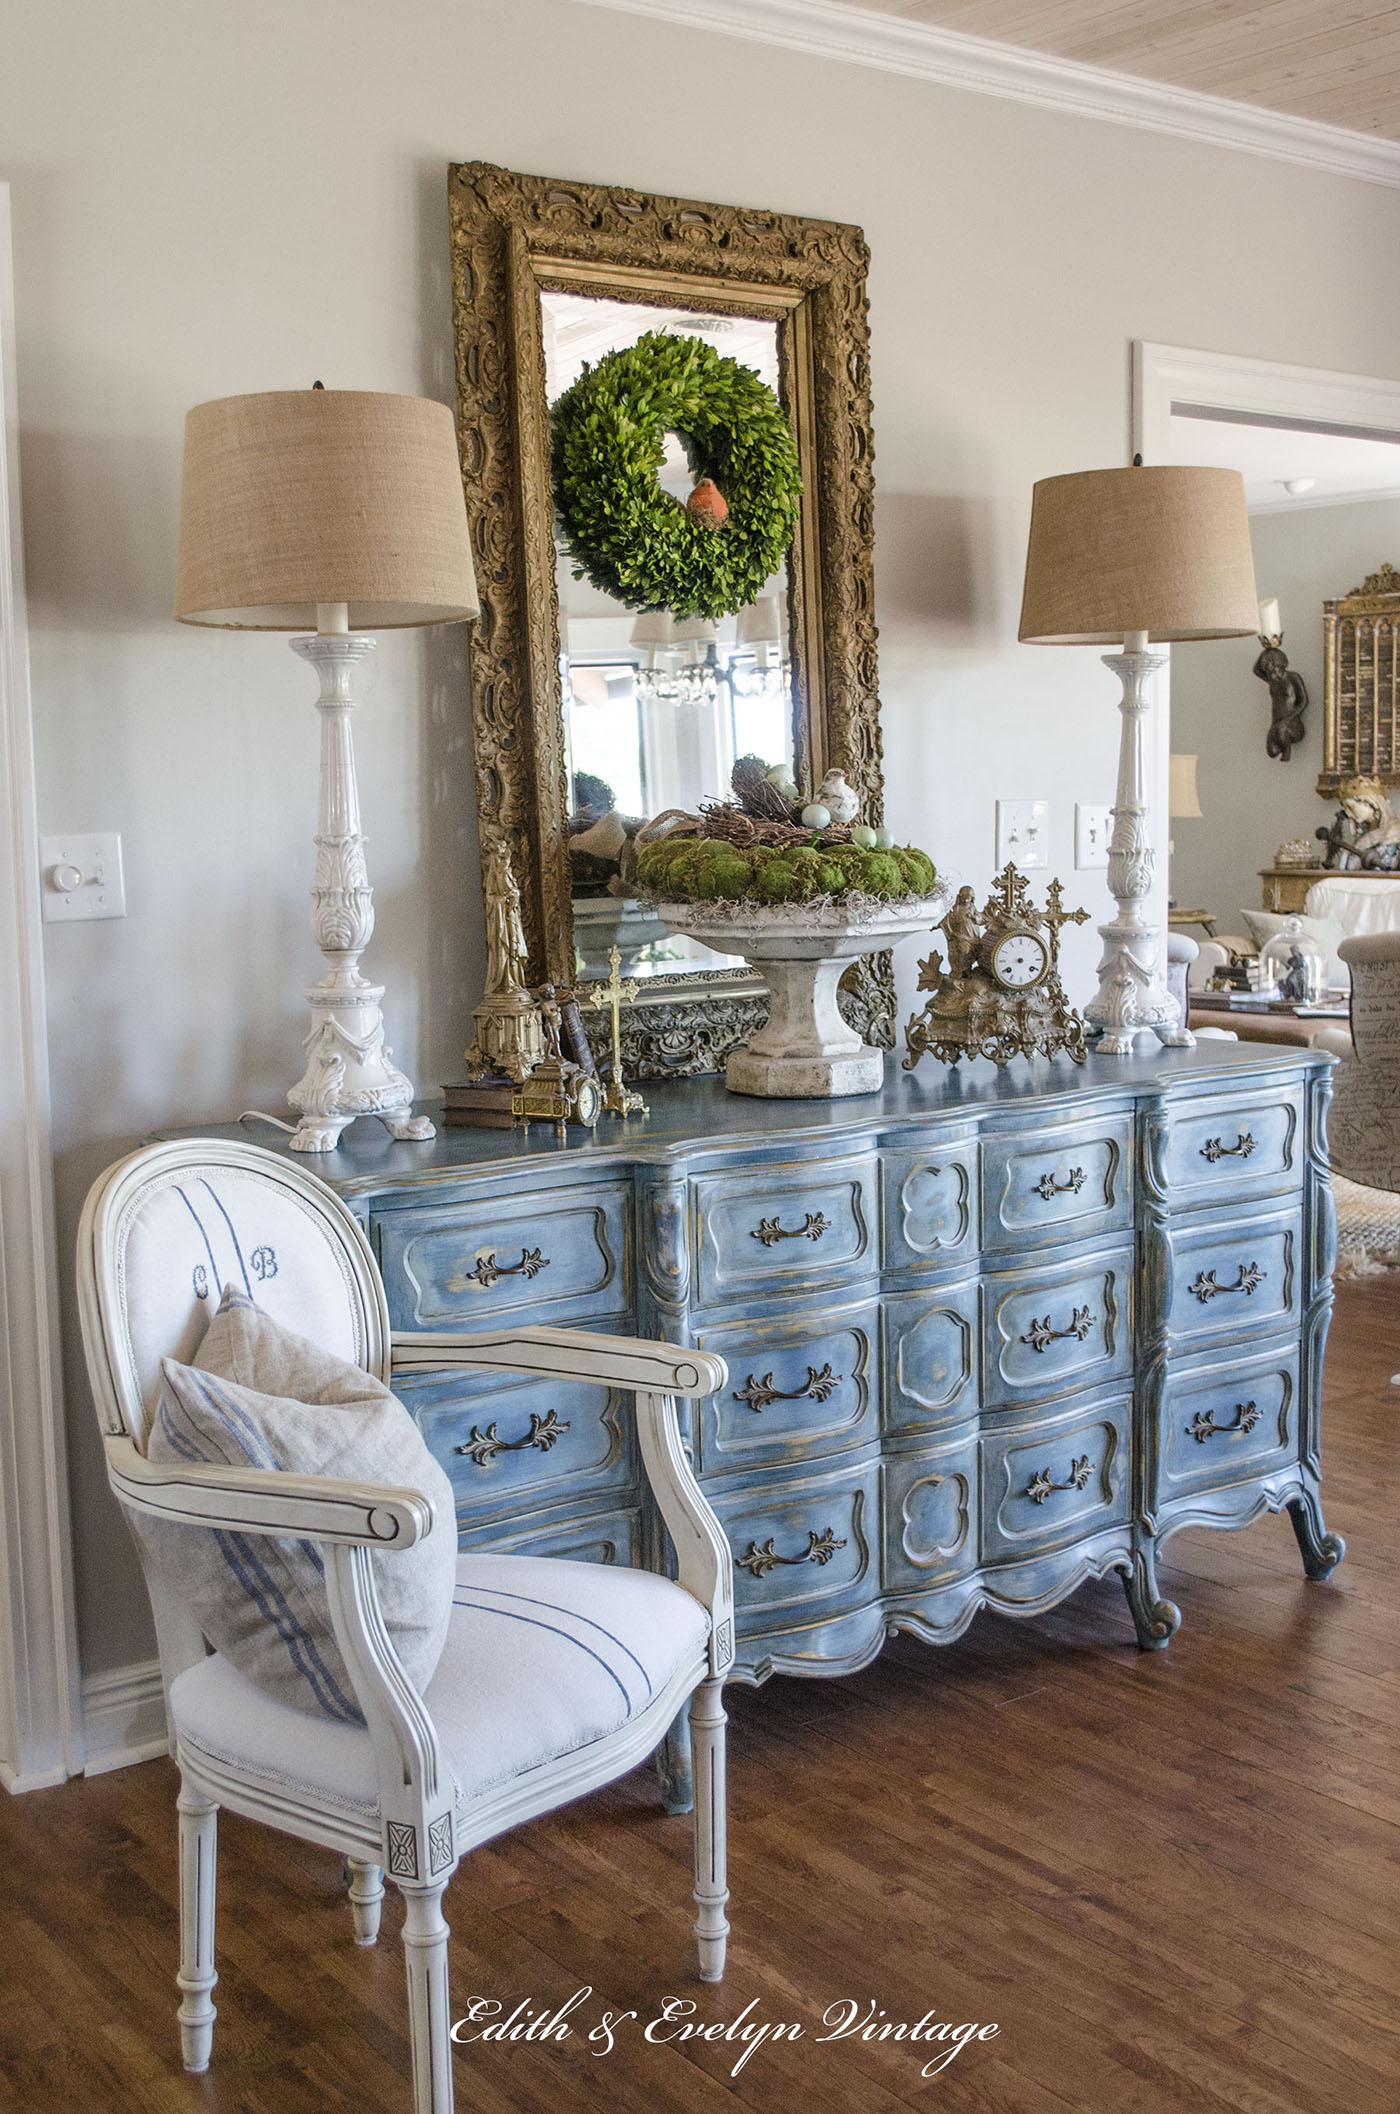 A Blue French Provincial Dresser | Edith & Evelyn